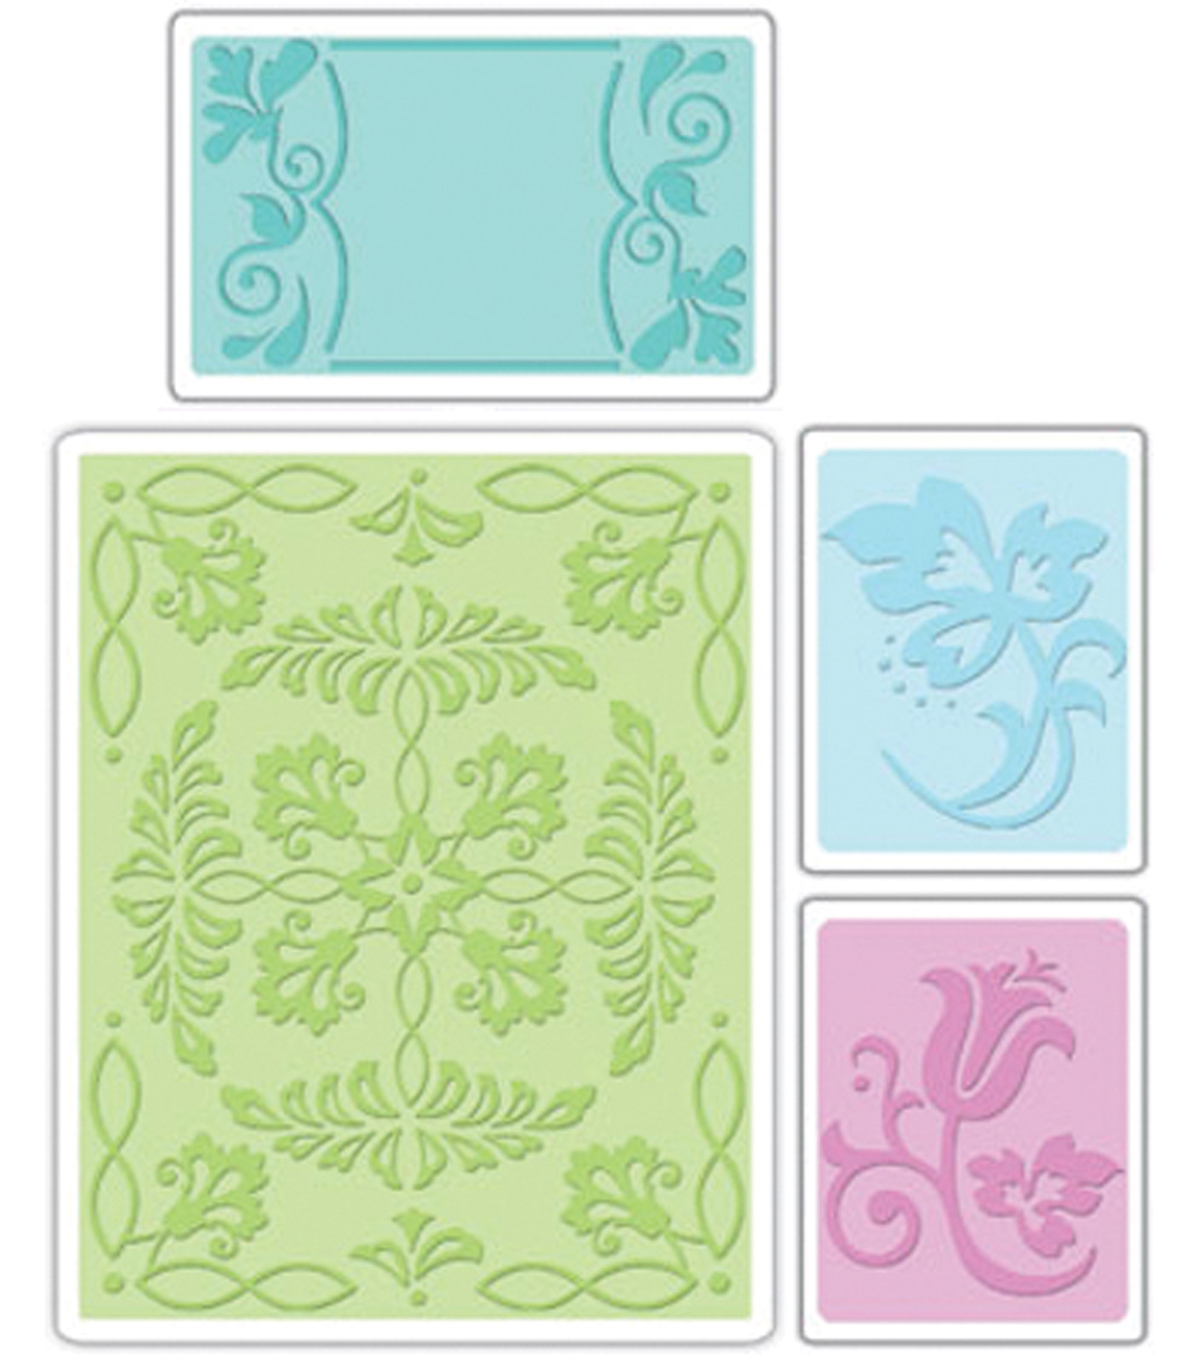 Sizzix Textured Impressions Embossing Folders Ornate Flowers Frame